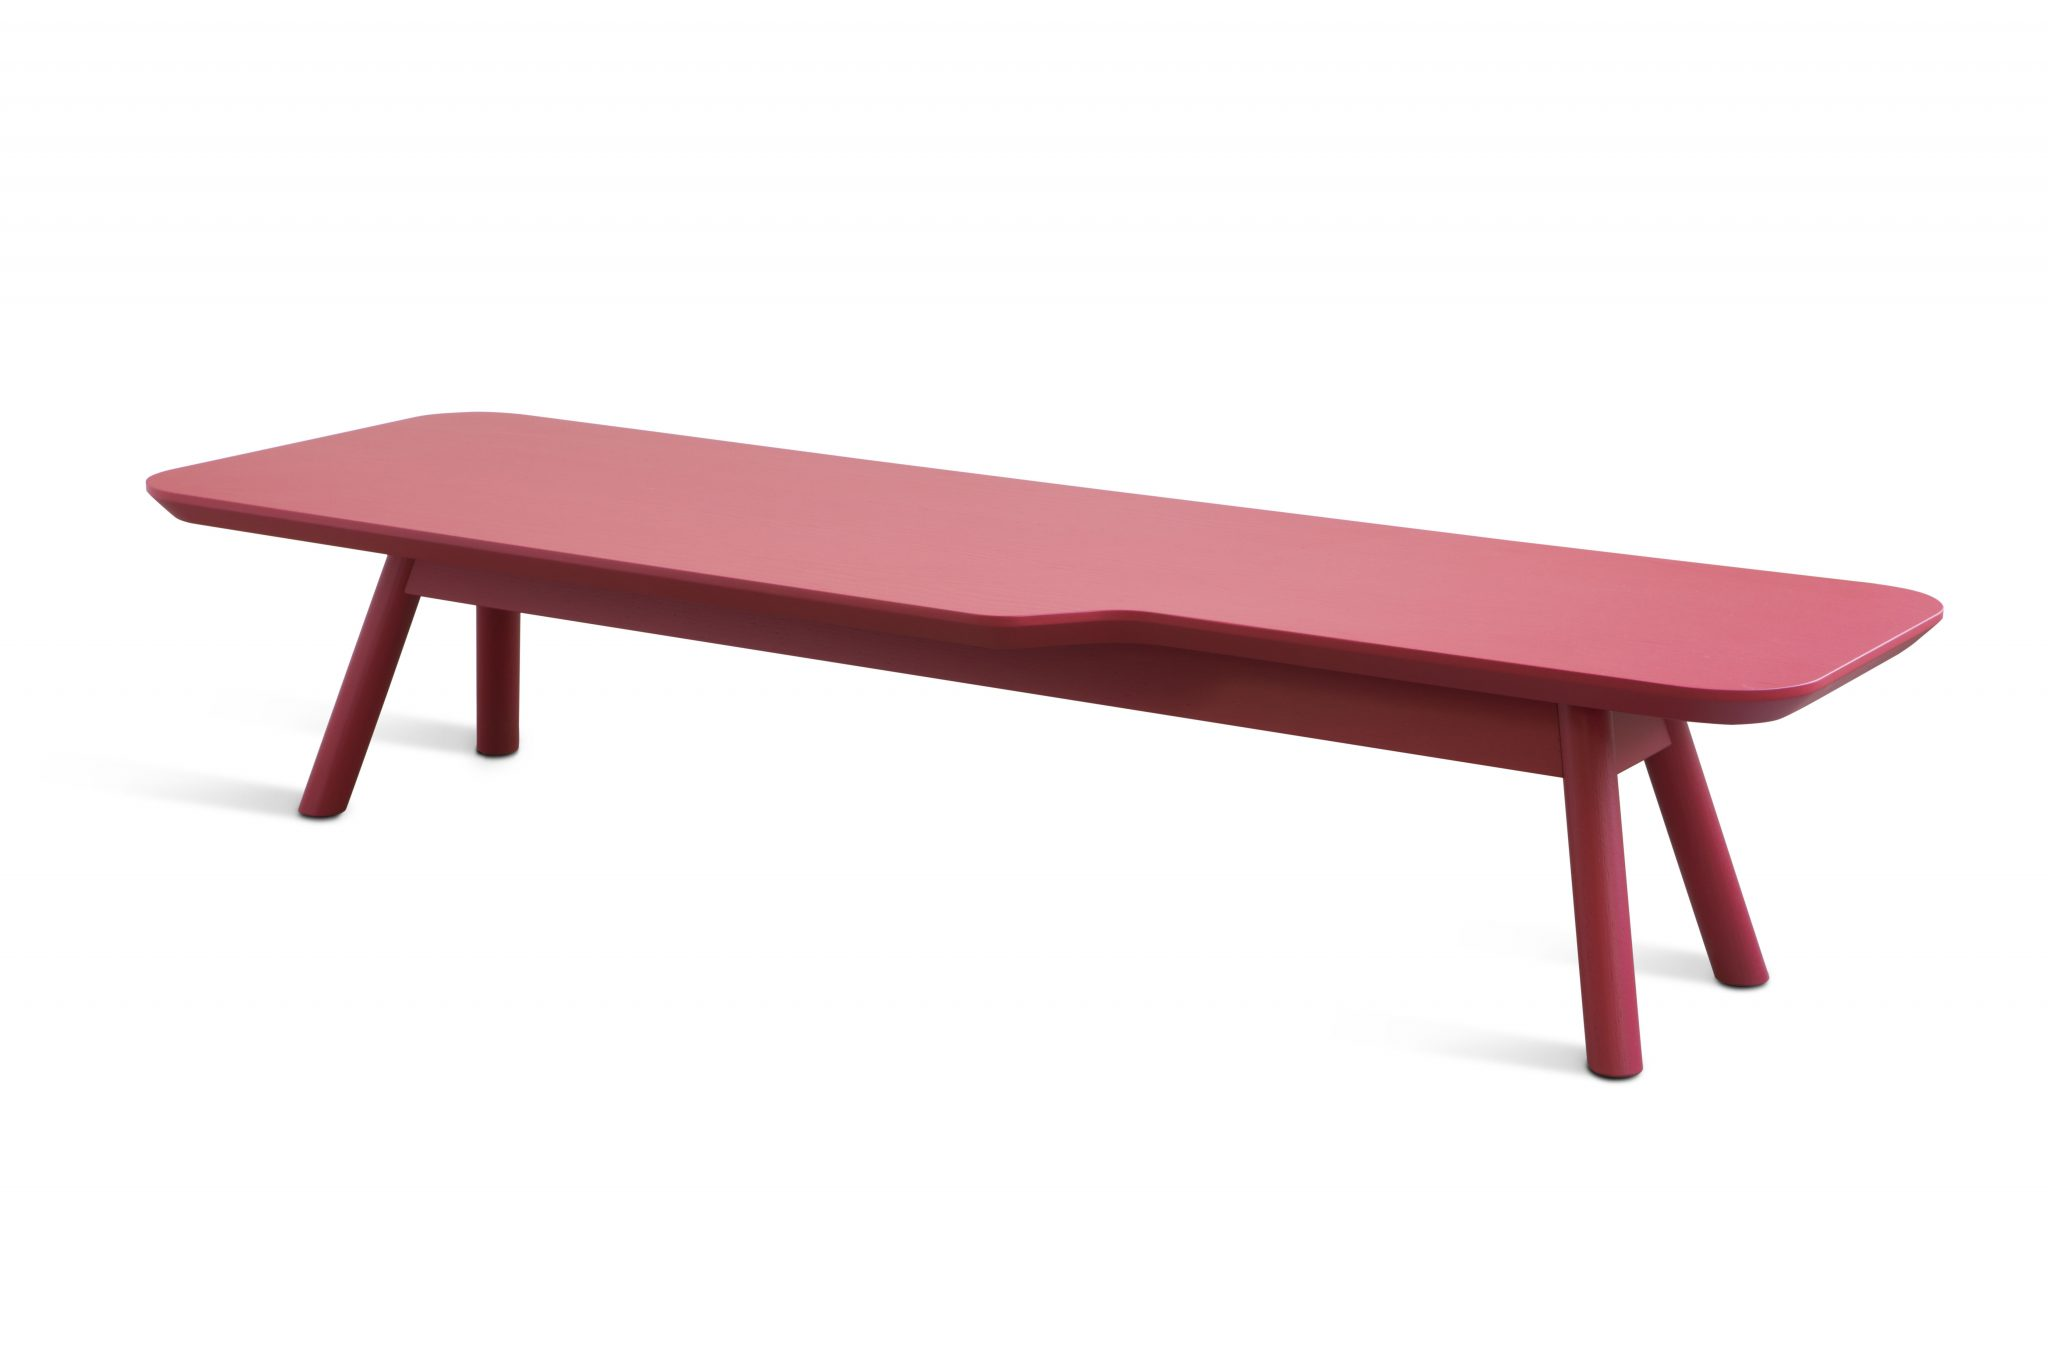 AKY SMALL TABLE (2)